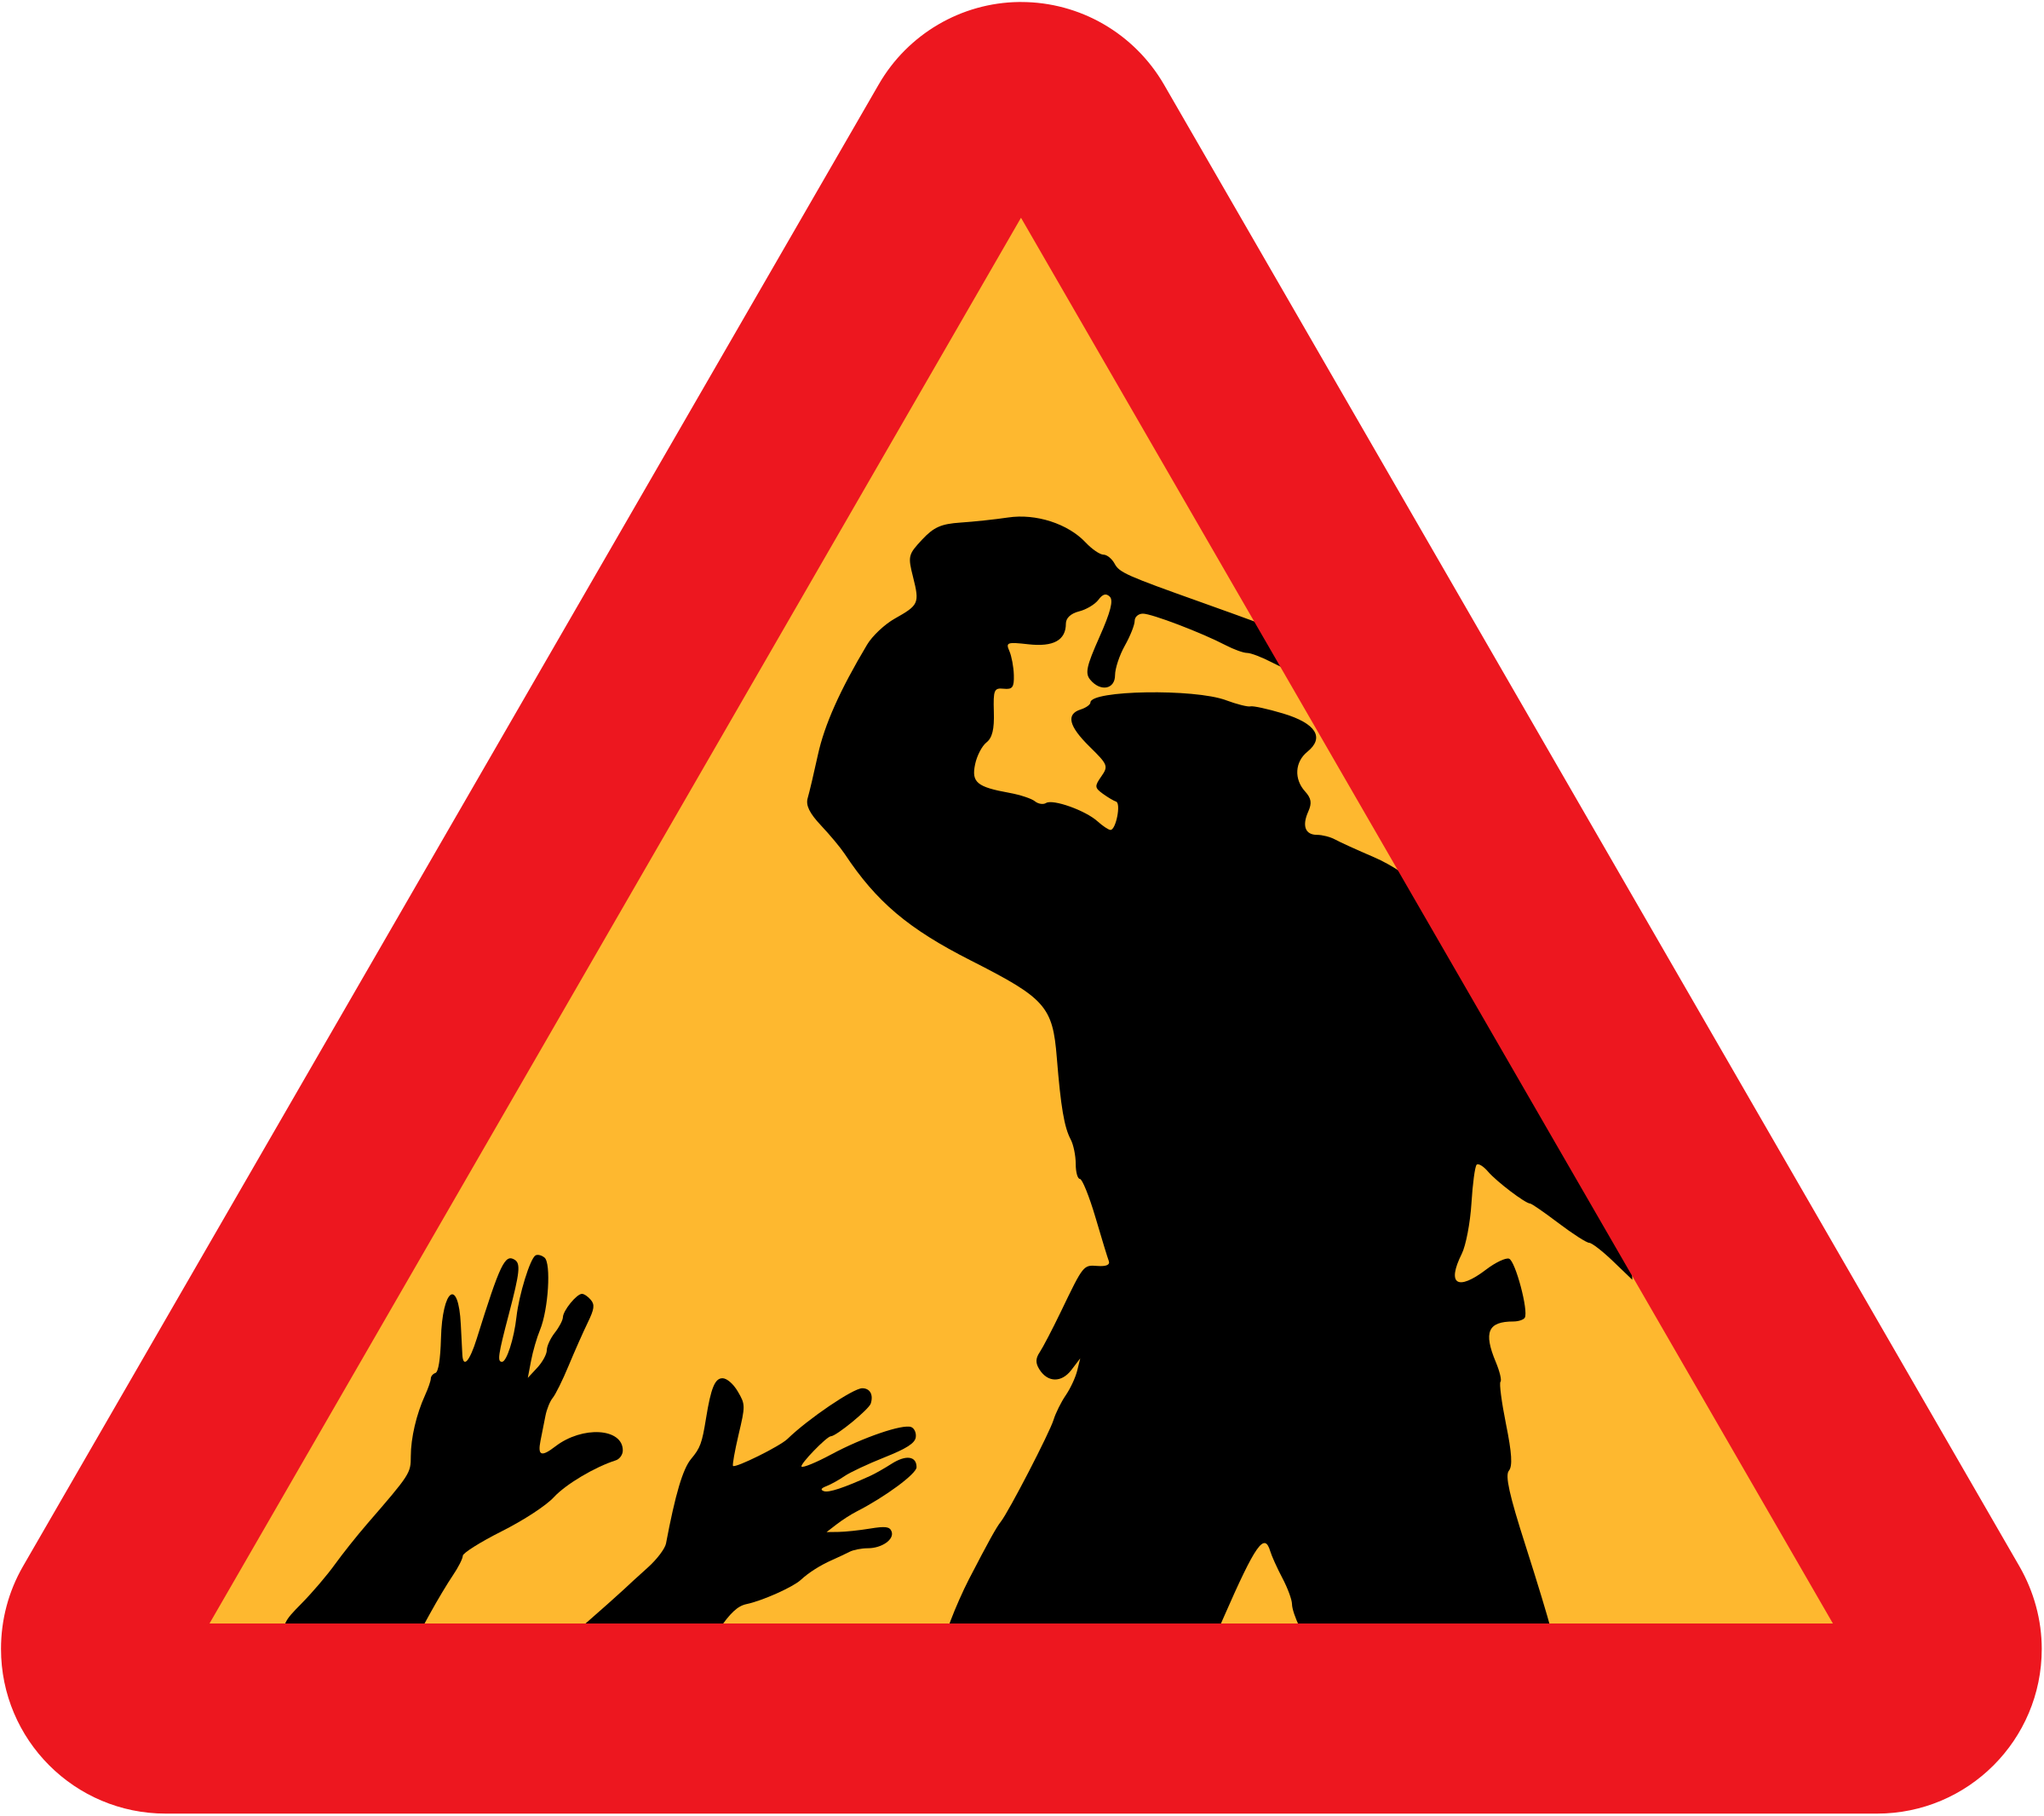 Warning for police brutality by liftarn